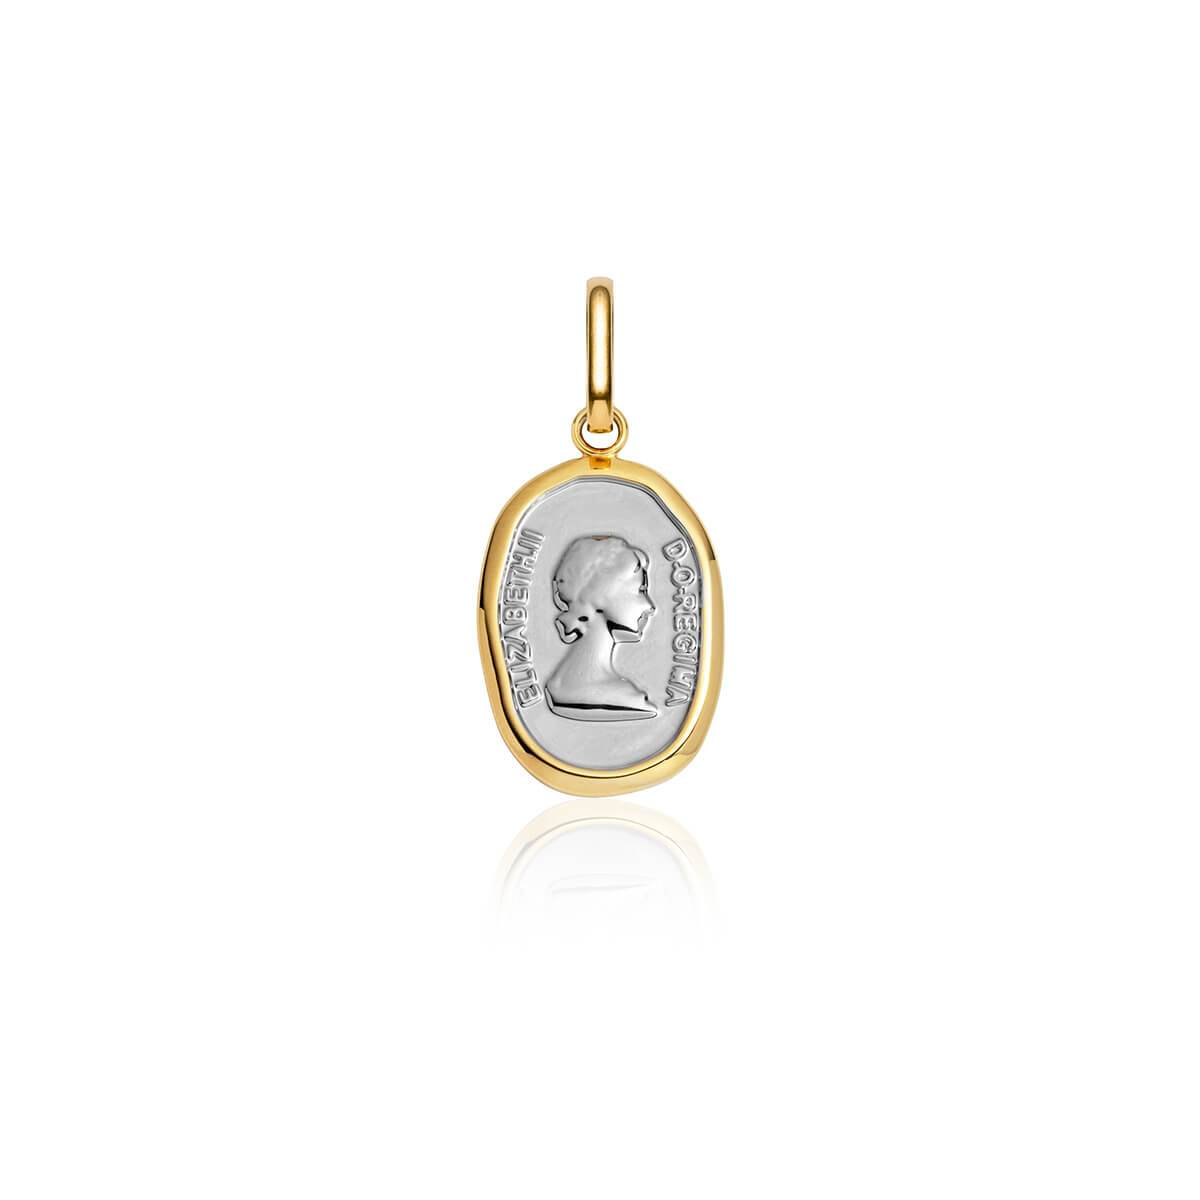 Selected Queen Pendant (Yellow Gold/Silver)